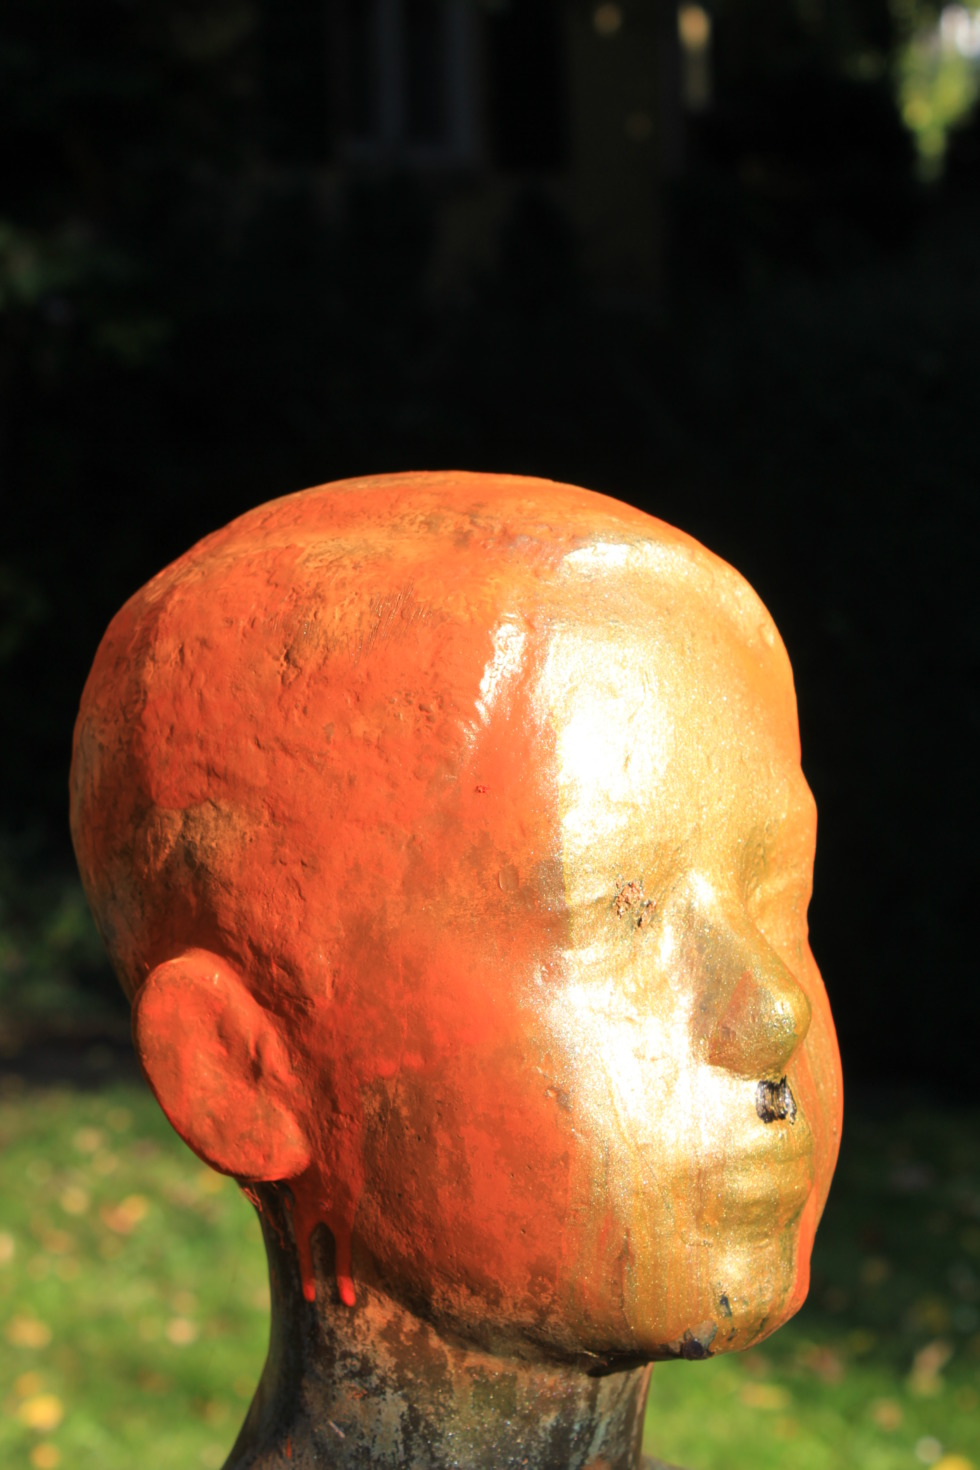 Sprayed and defaced bronze sculpture